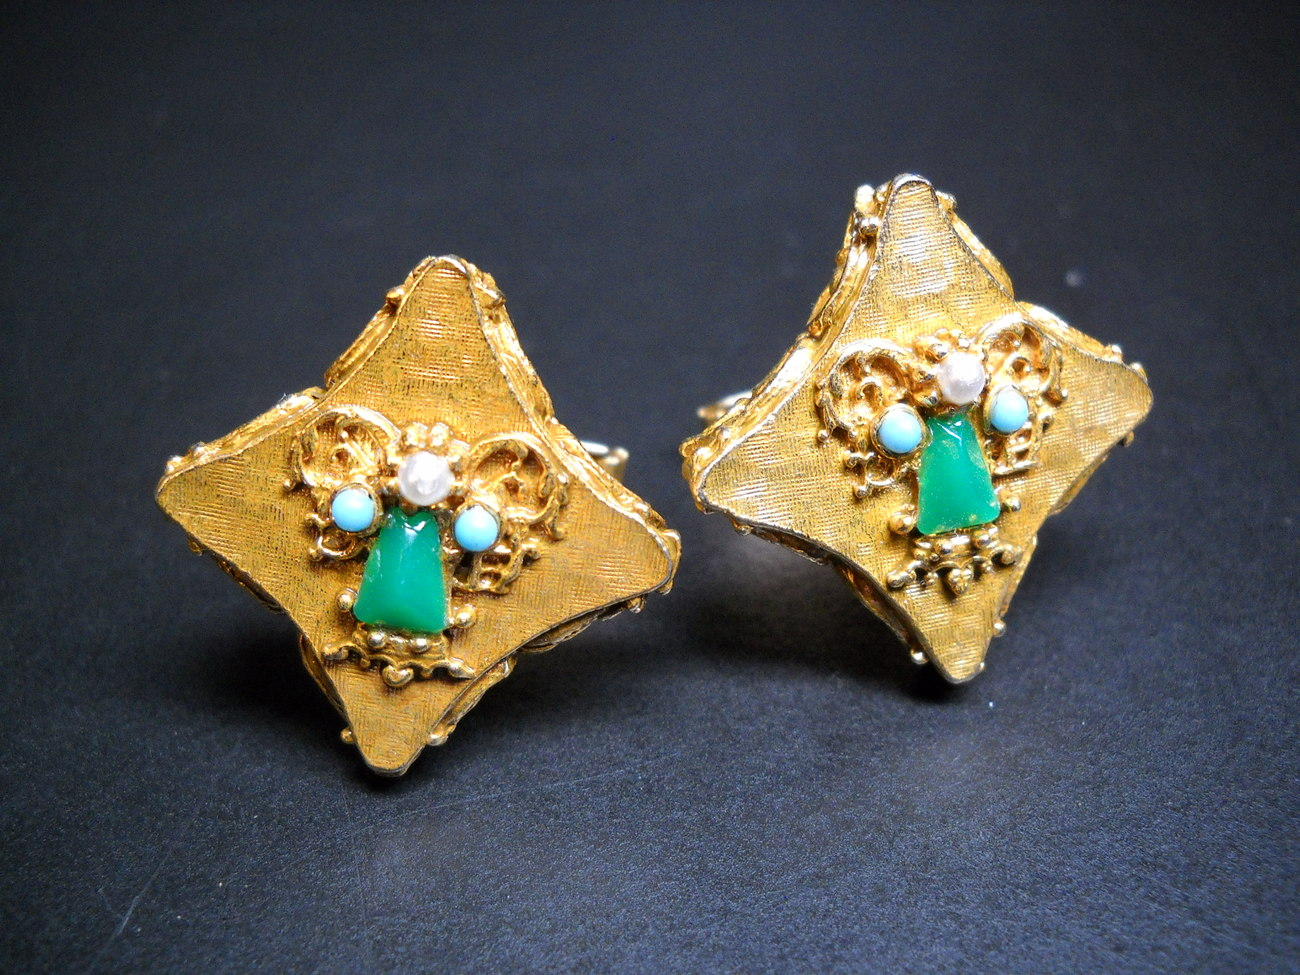 Cuff Links Little Angels Gold Colored with Pearly Green Blue White Stones No Box